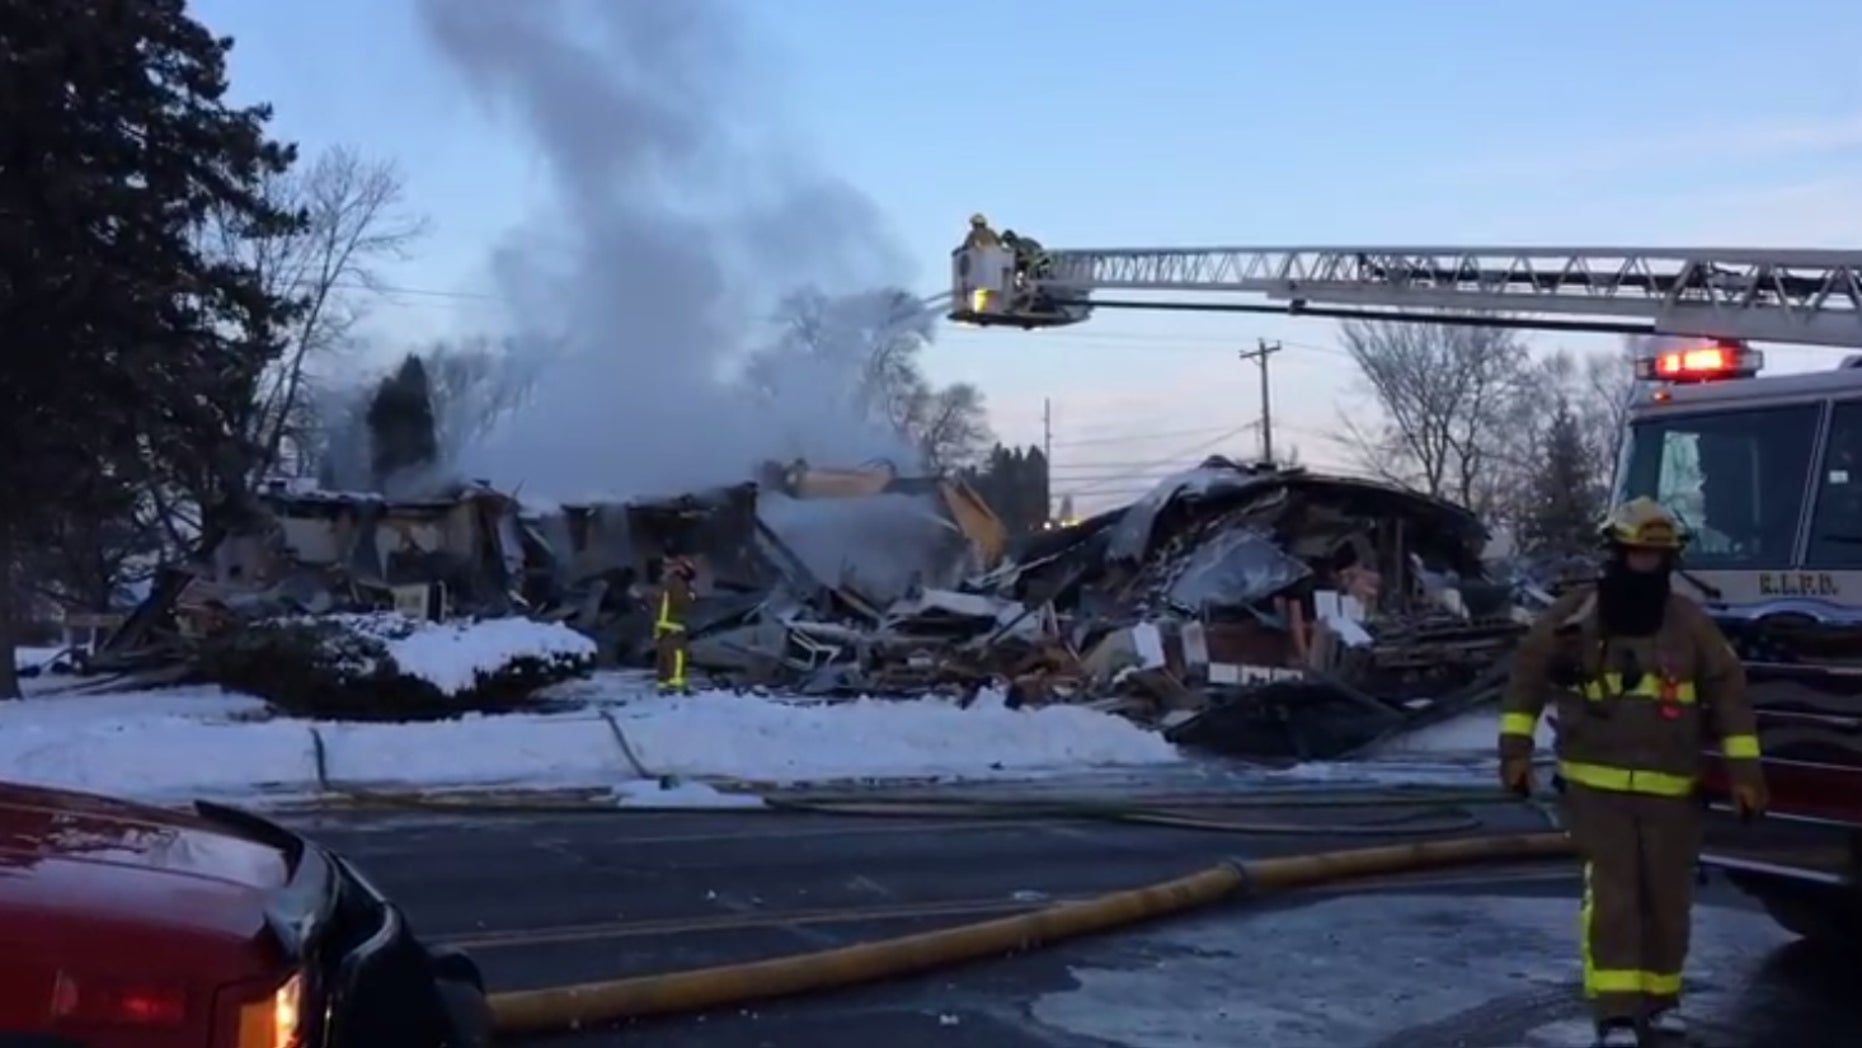 The explosion leveled the apartment building in northwestern Wisconsin.